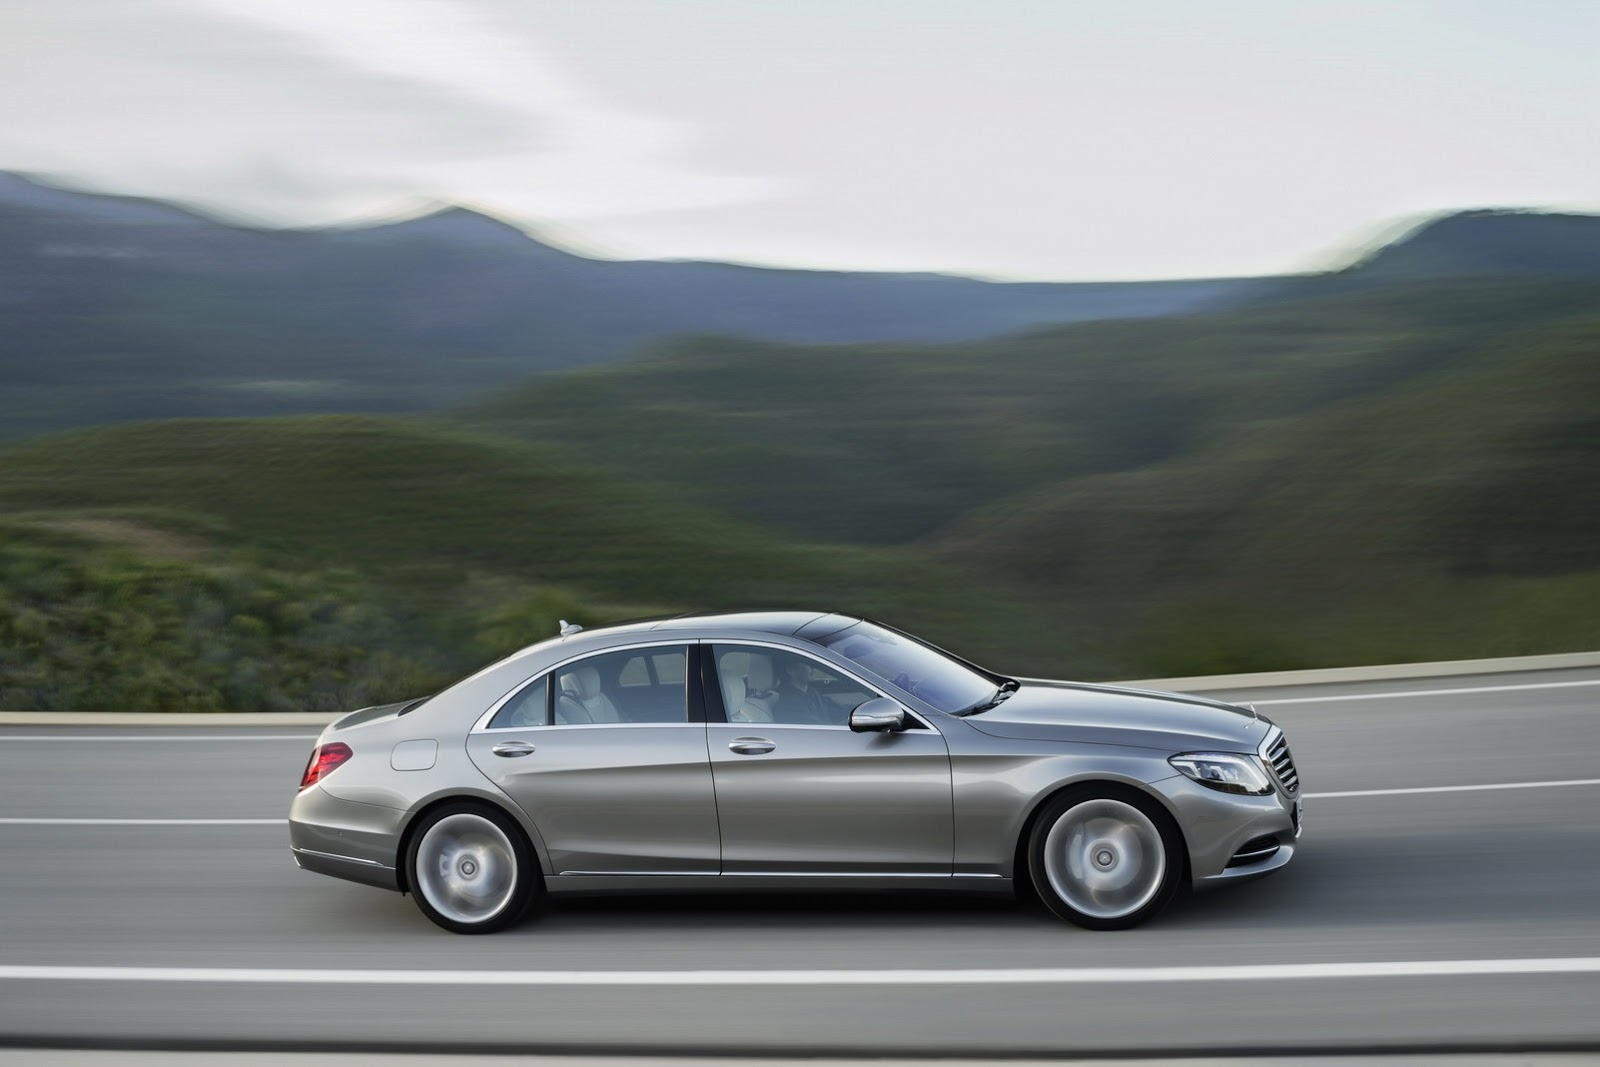 2014 Mercedes Benz S-Class - SMADE MEDIA (39)